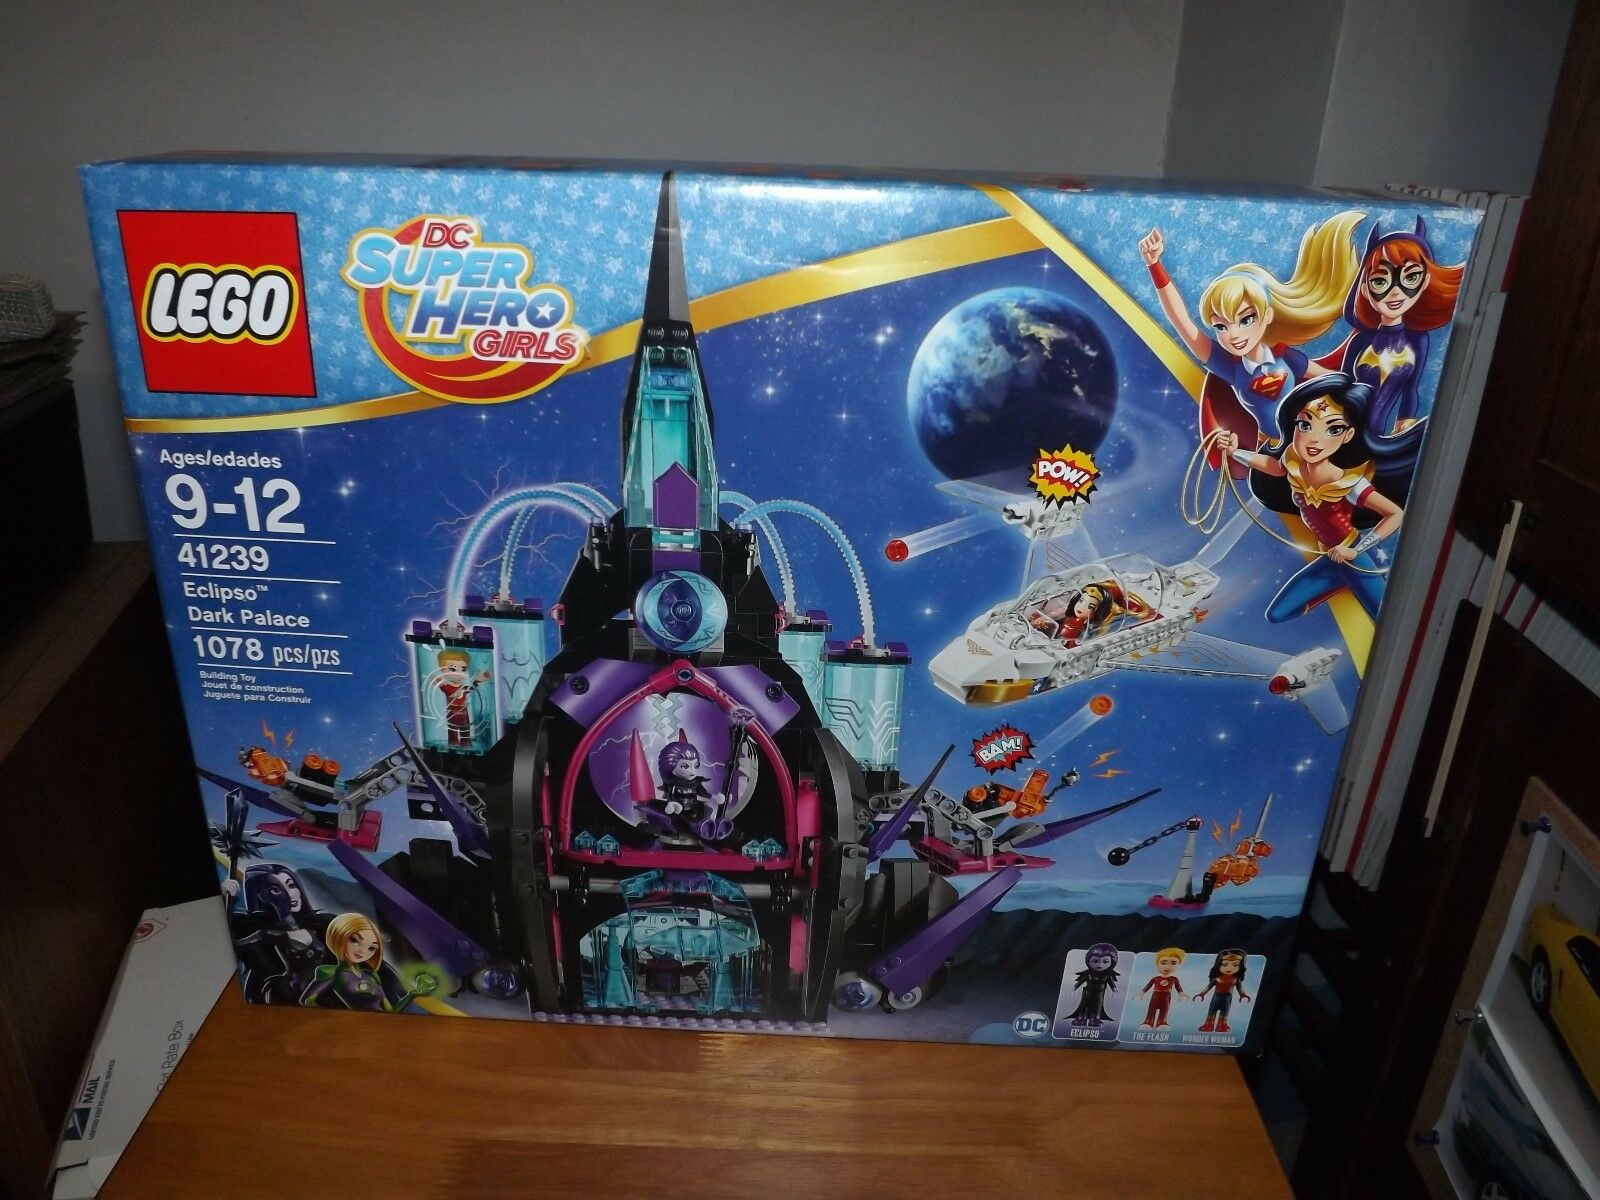 LEGO, DC SUPER HERO GIRLS, ECLIPSO DARK PALACE, KIT  41239, 1078 PIECES NIB 2017